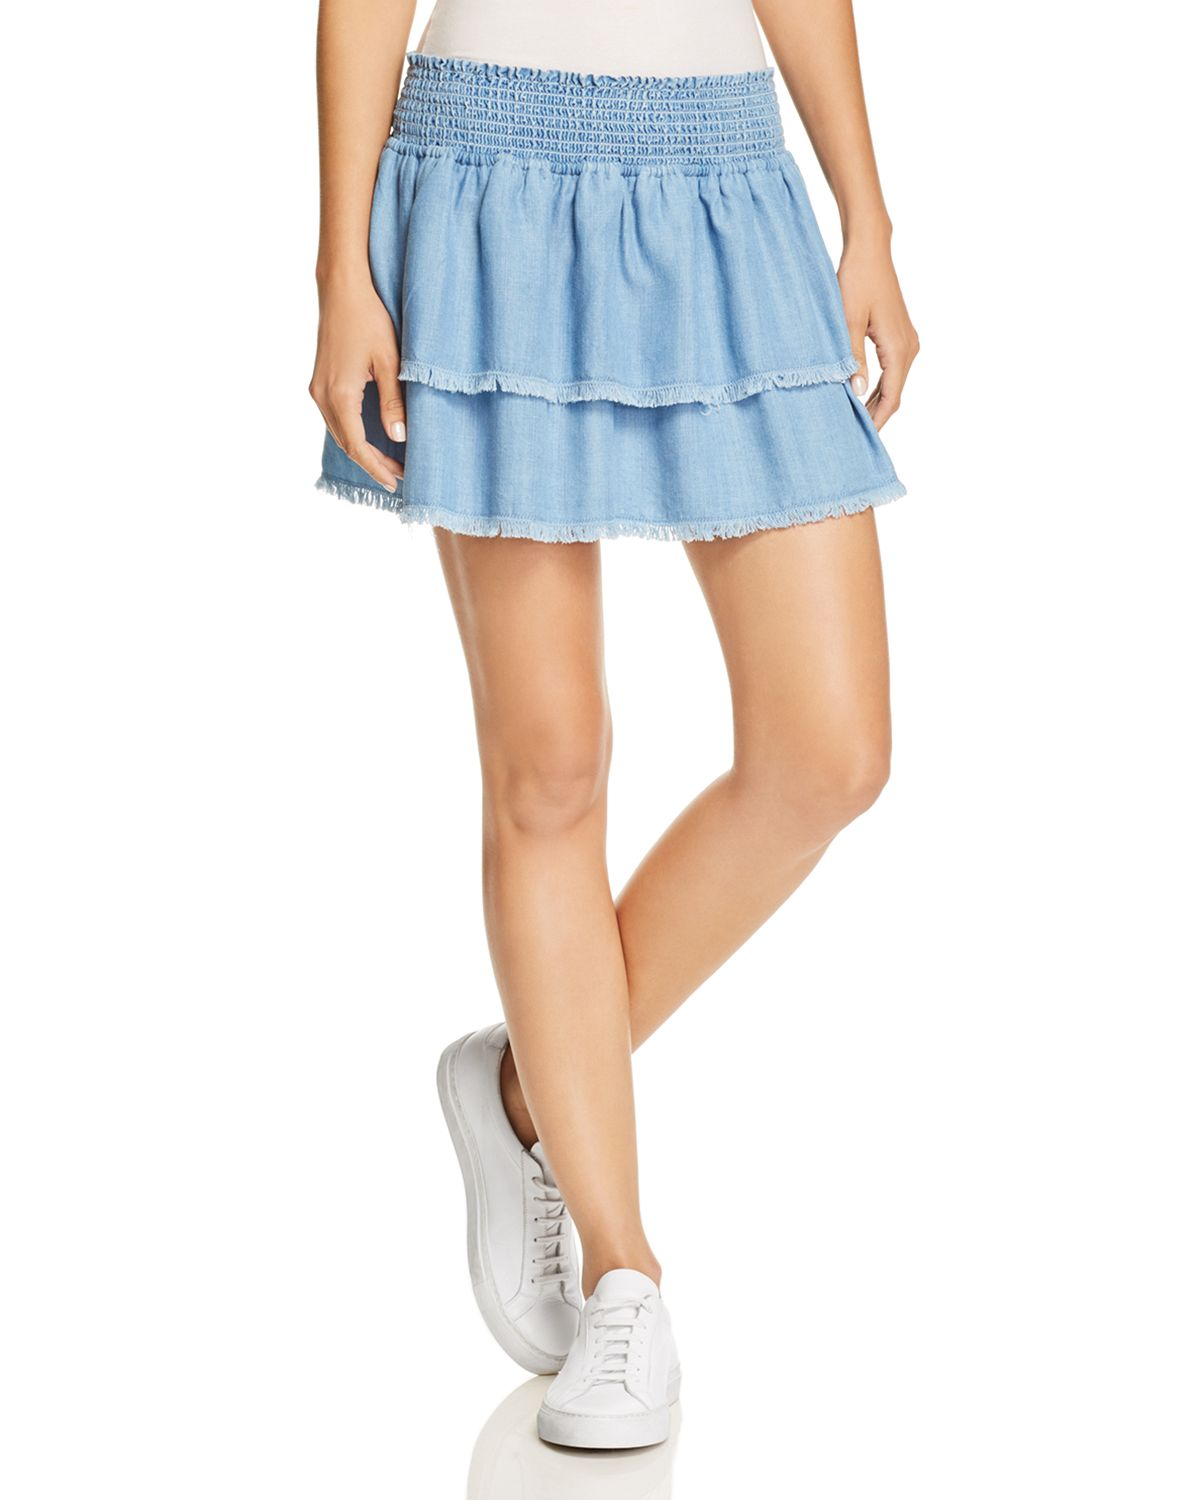 Smocked & Fringed Tiered Skirt by Bella Dahl